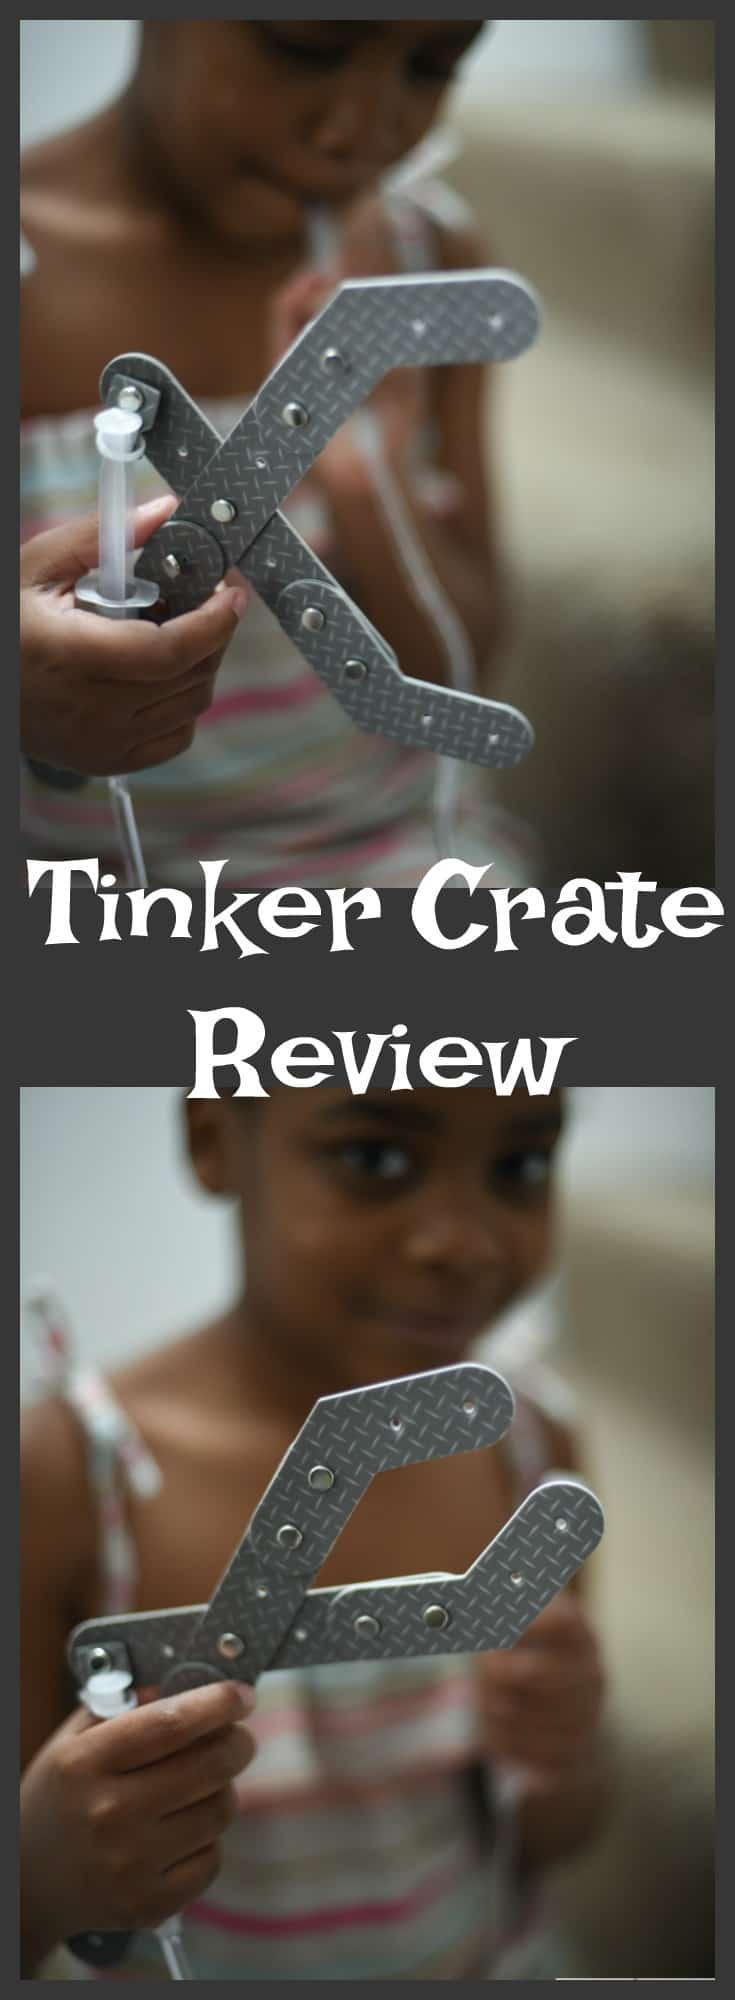 Tinker-Crate-Review